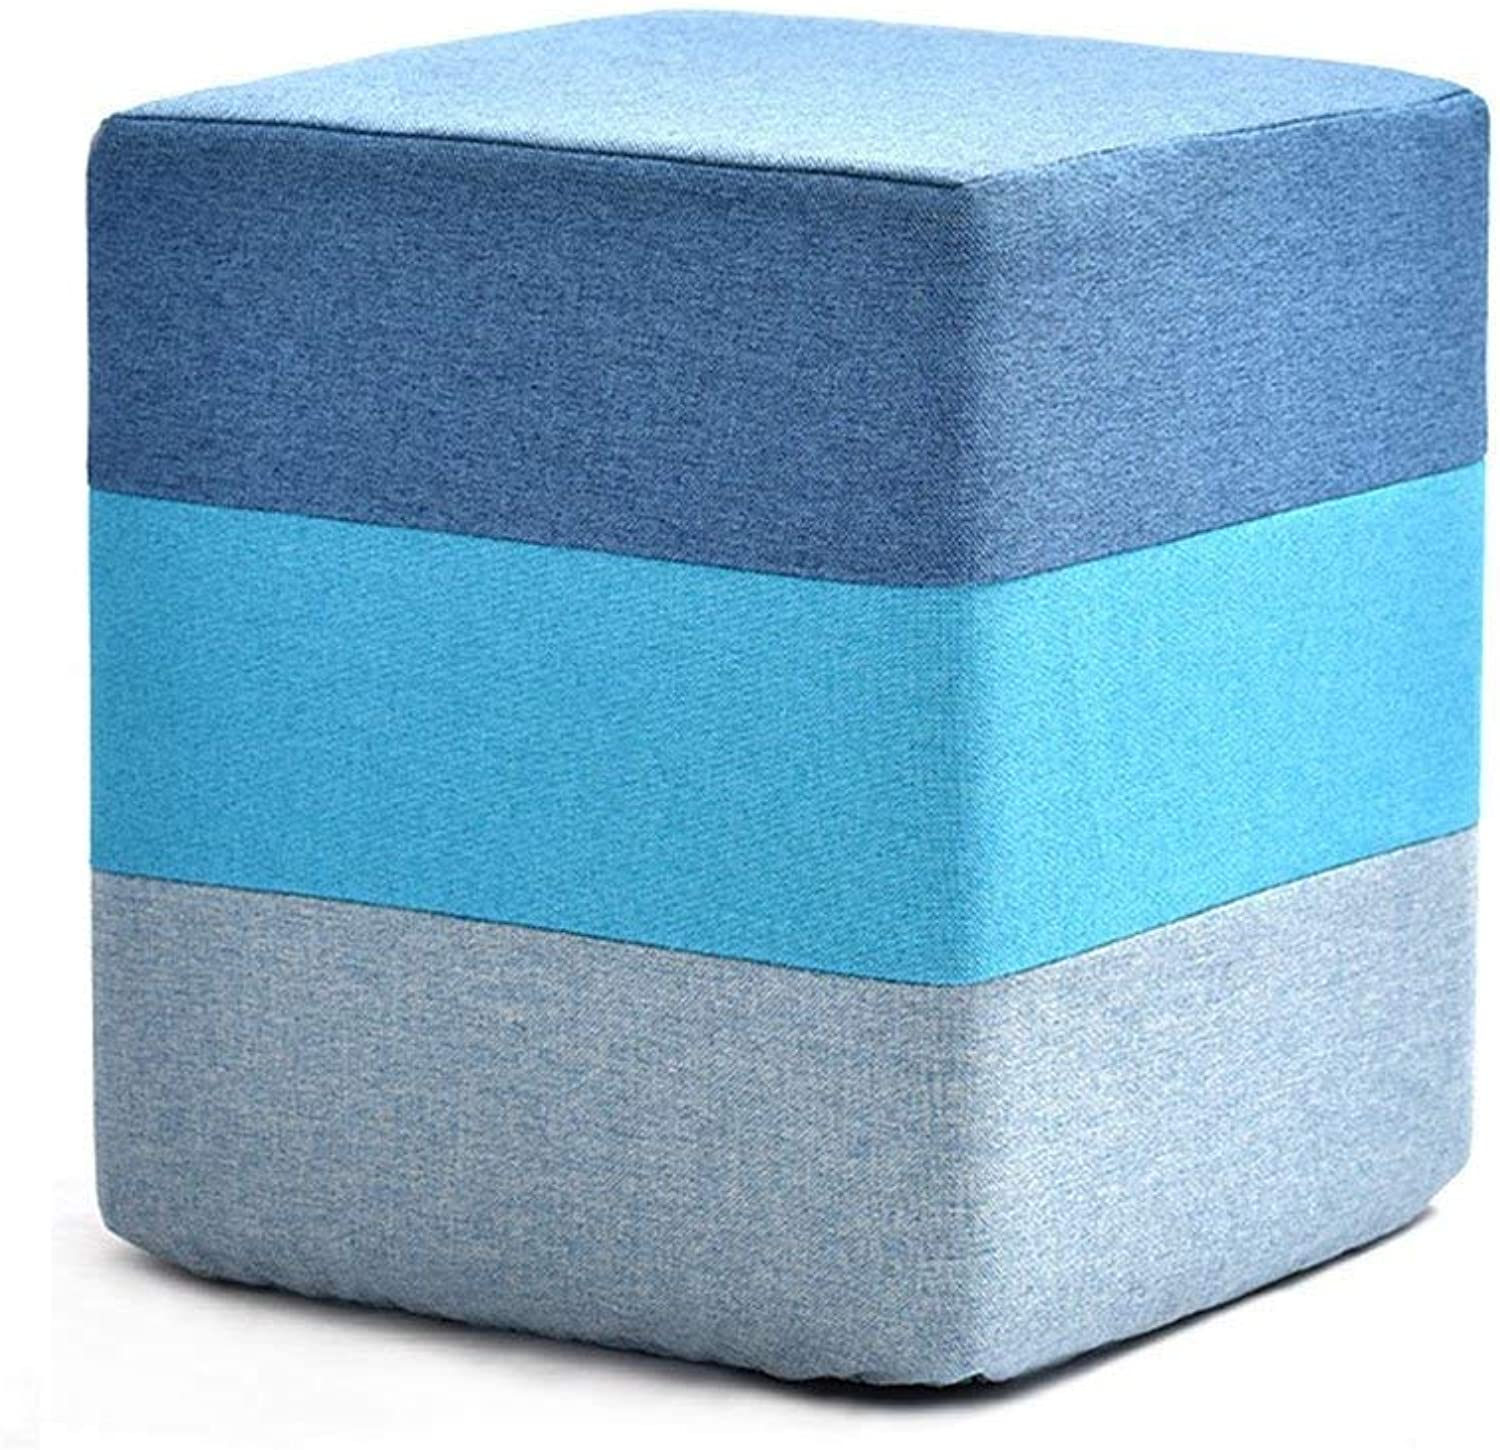 Small Stool, 31x31x35cm Length Home shoes Stool Ordinary Makeup Stool Living Room Bedroom Can Be Placed (color   bluee)